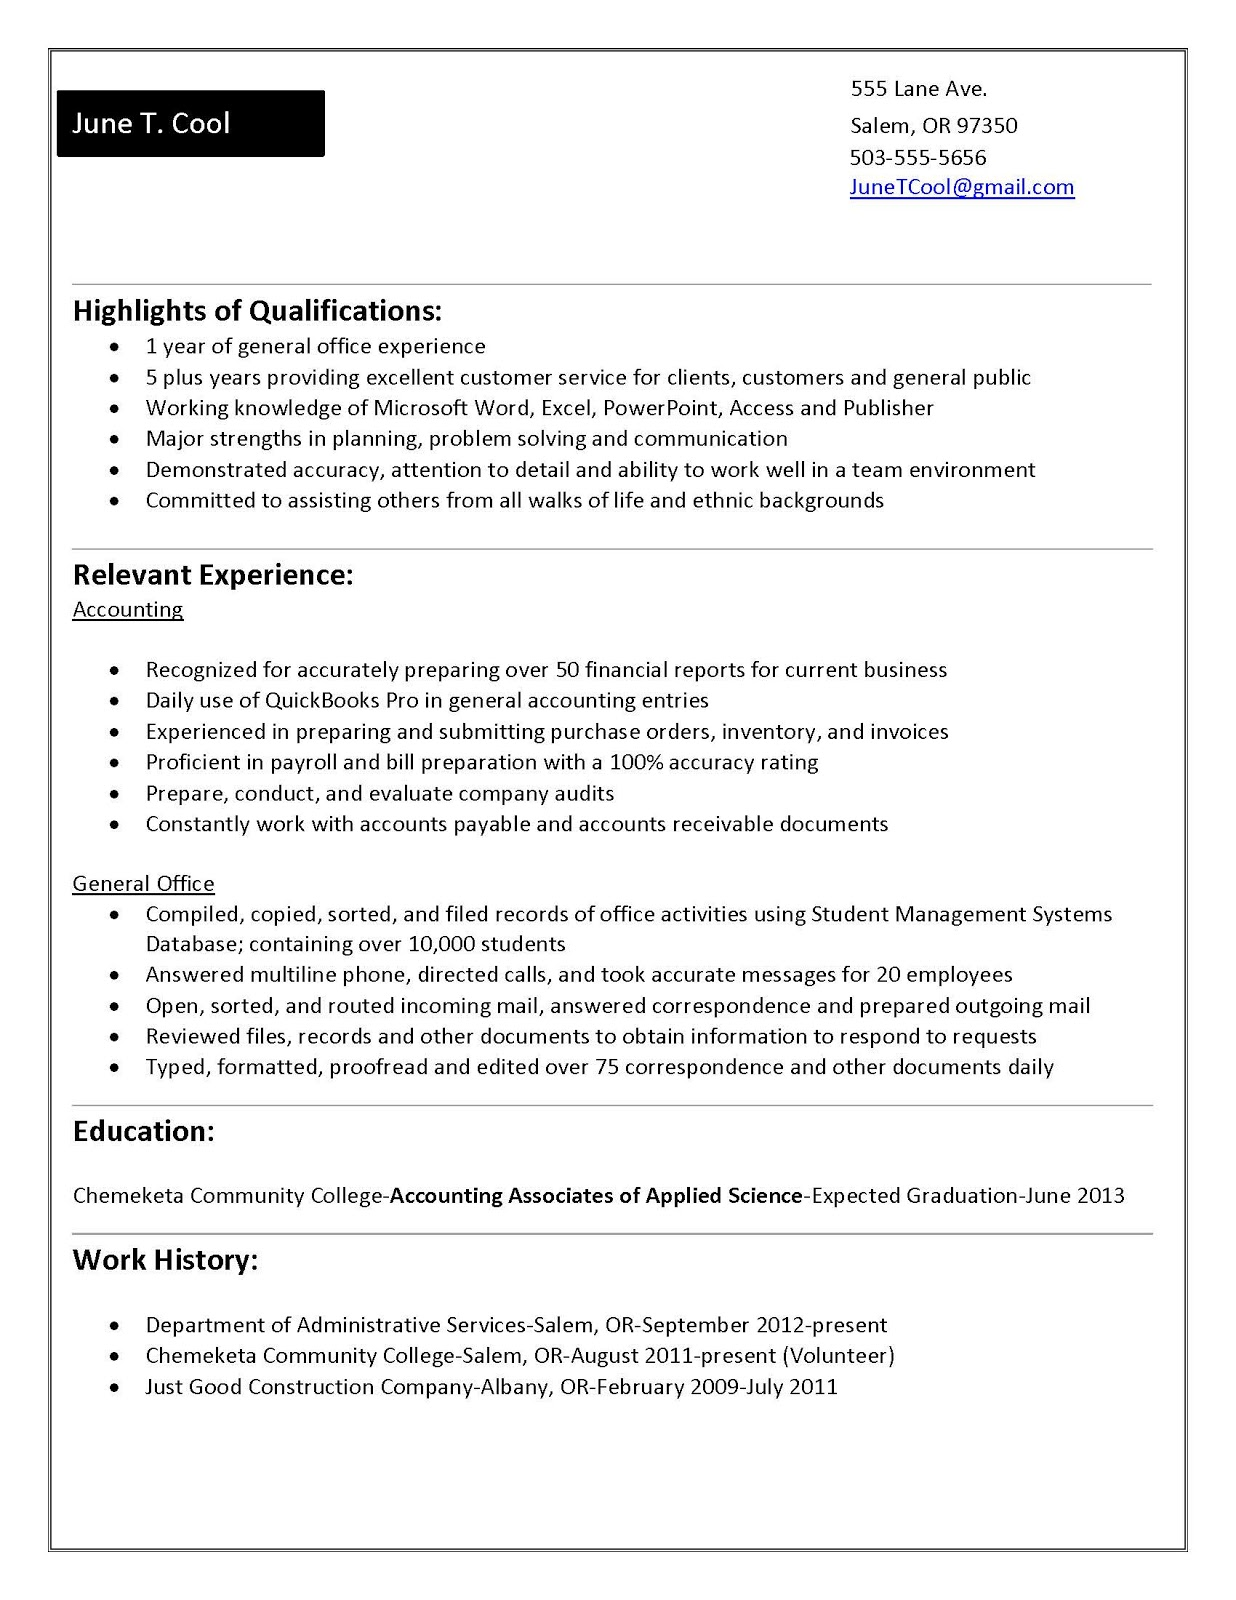 david gumpert business plan functional resume - Sample Functional Resumes